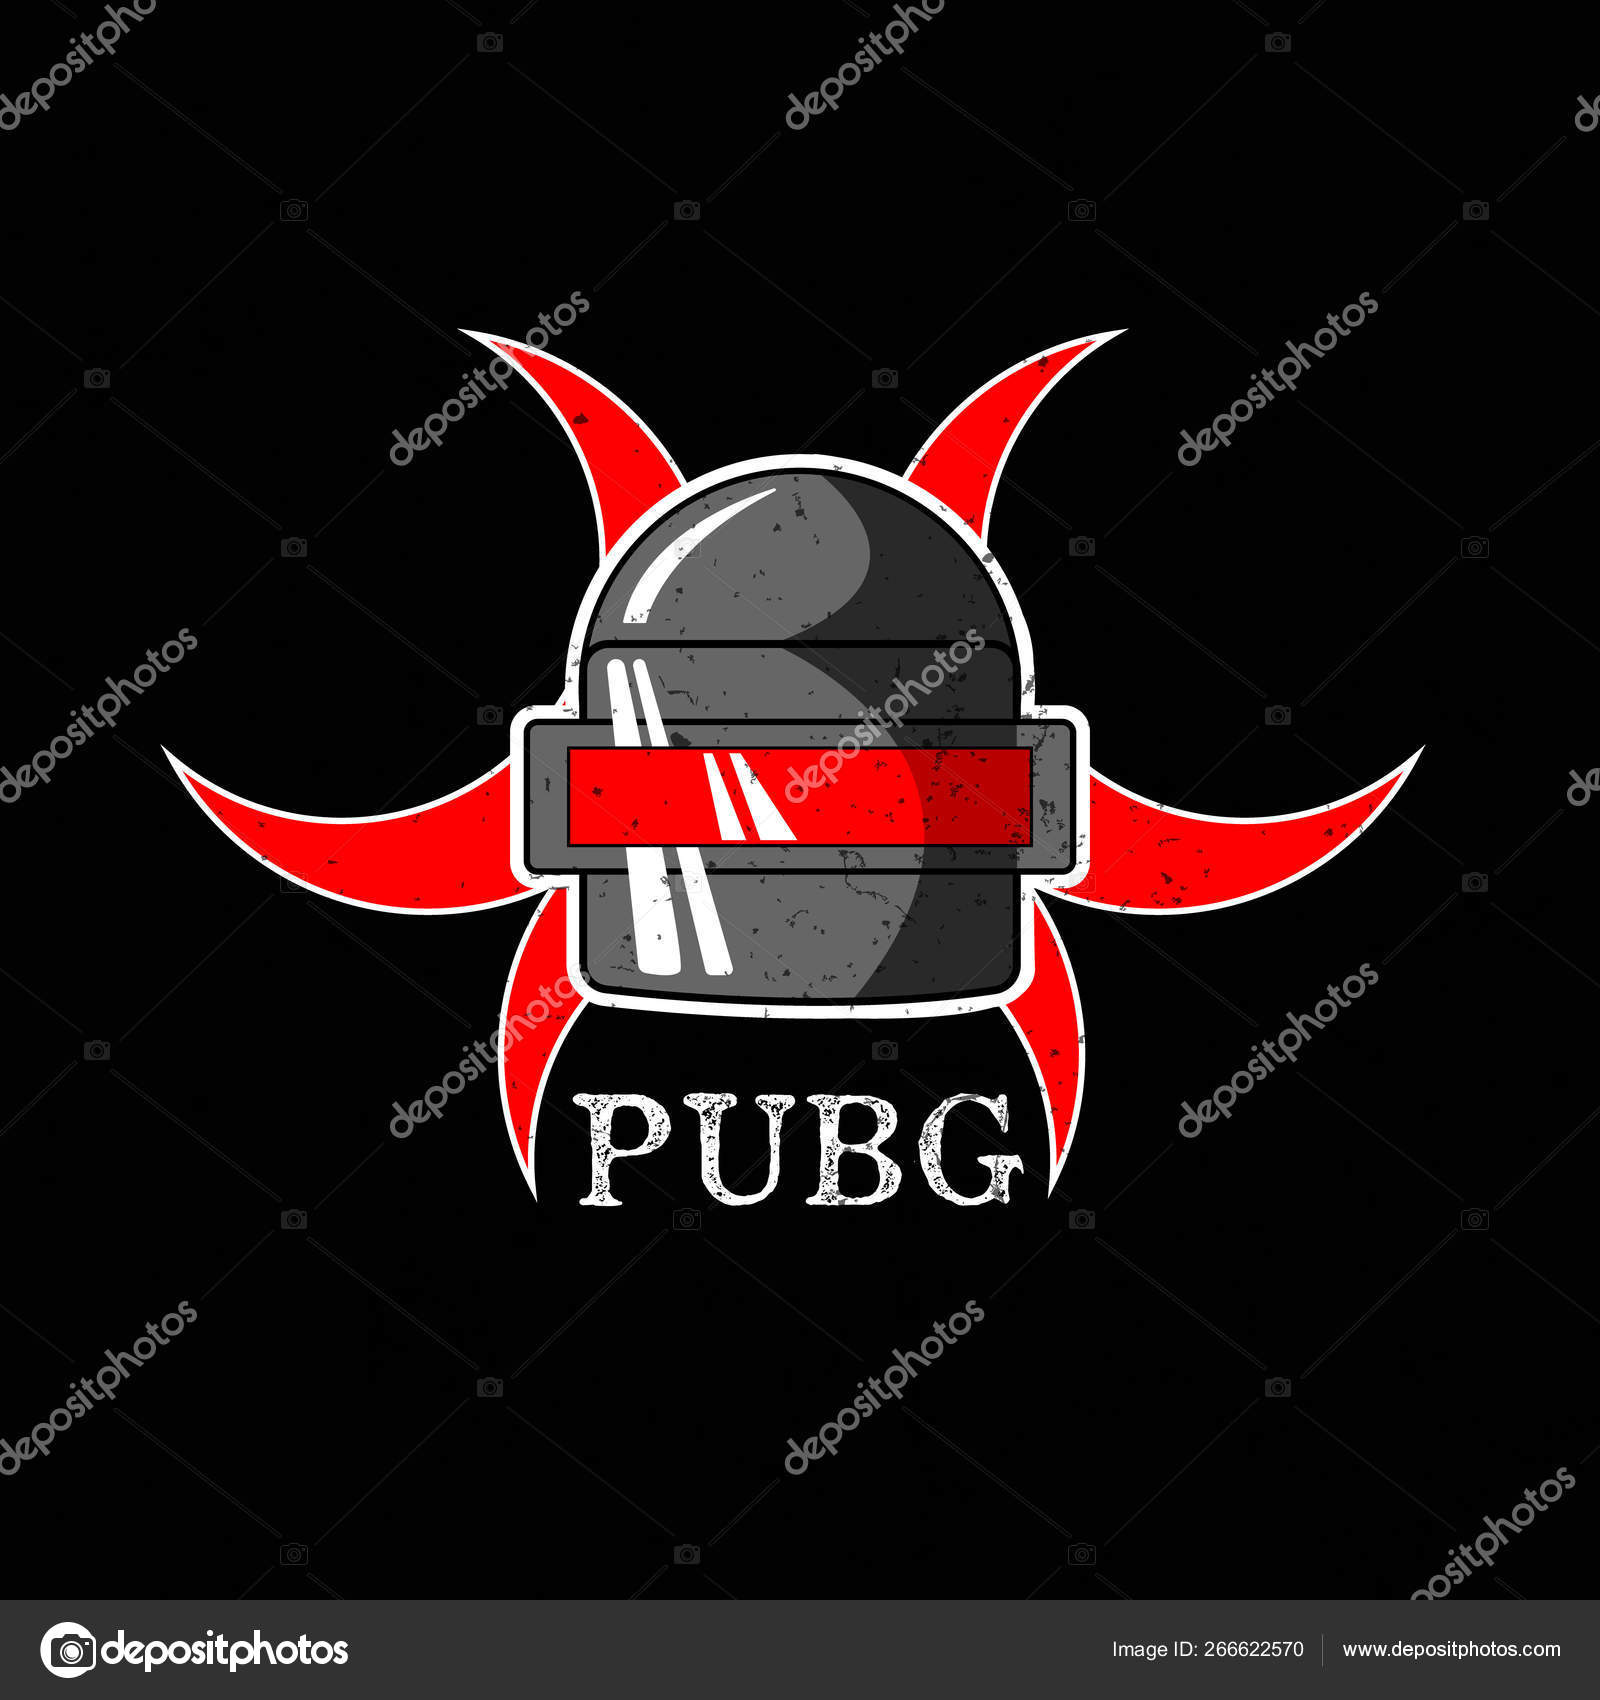 ᐈ Pubg Clan Logo Design Stock Images Royalty Free